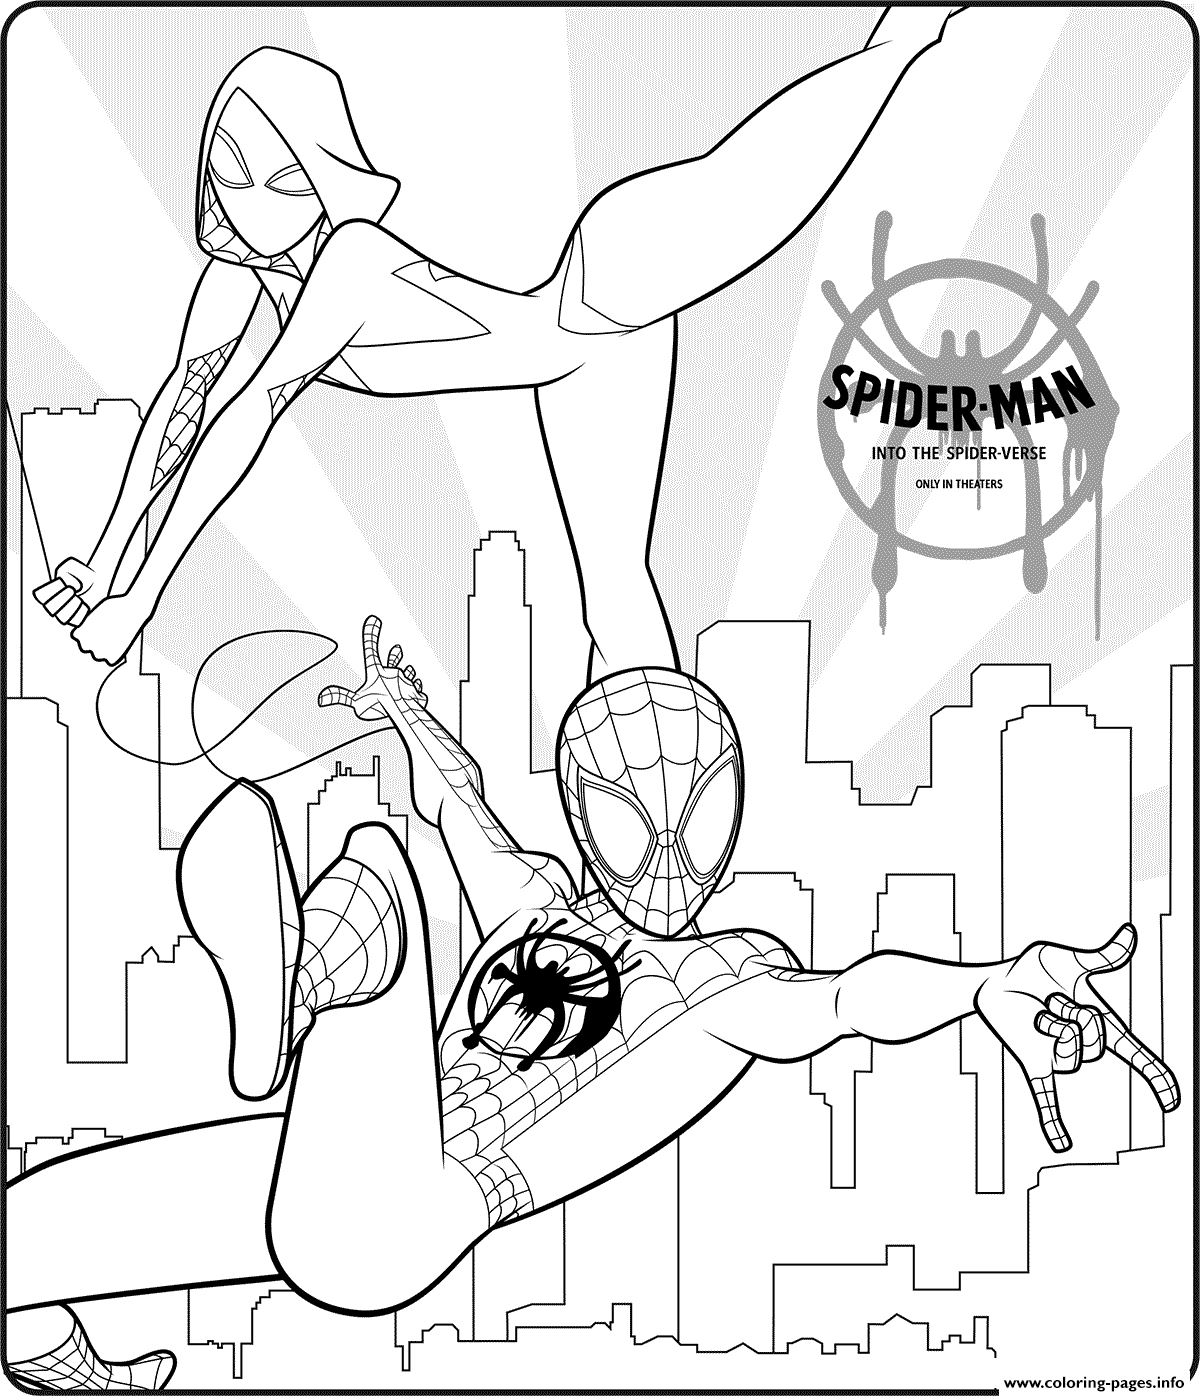 Print Spider Man Into The Spider Verse Coloring Pages Avengers Coloring Pages Spiderman Coloring Avengers Coloring